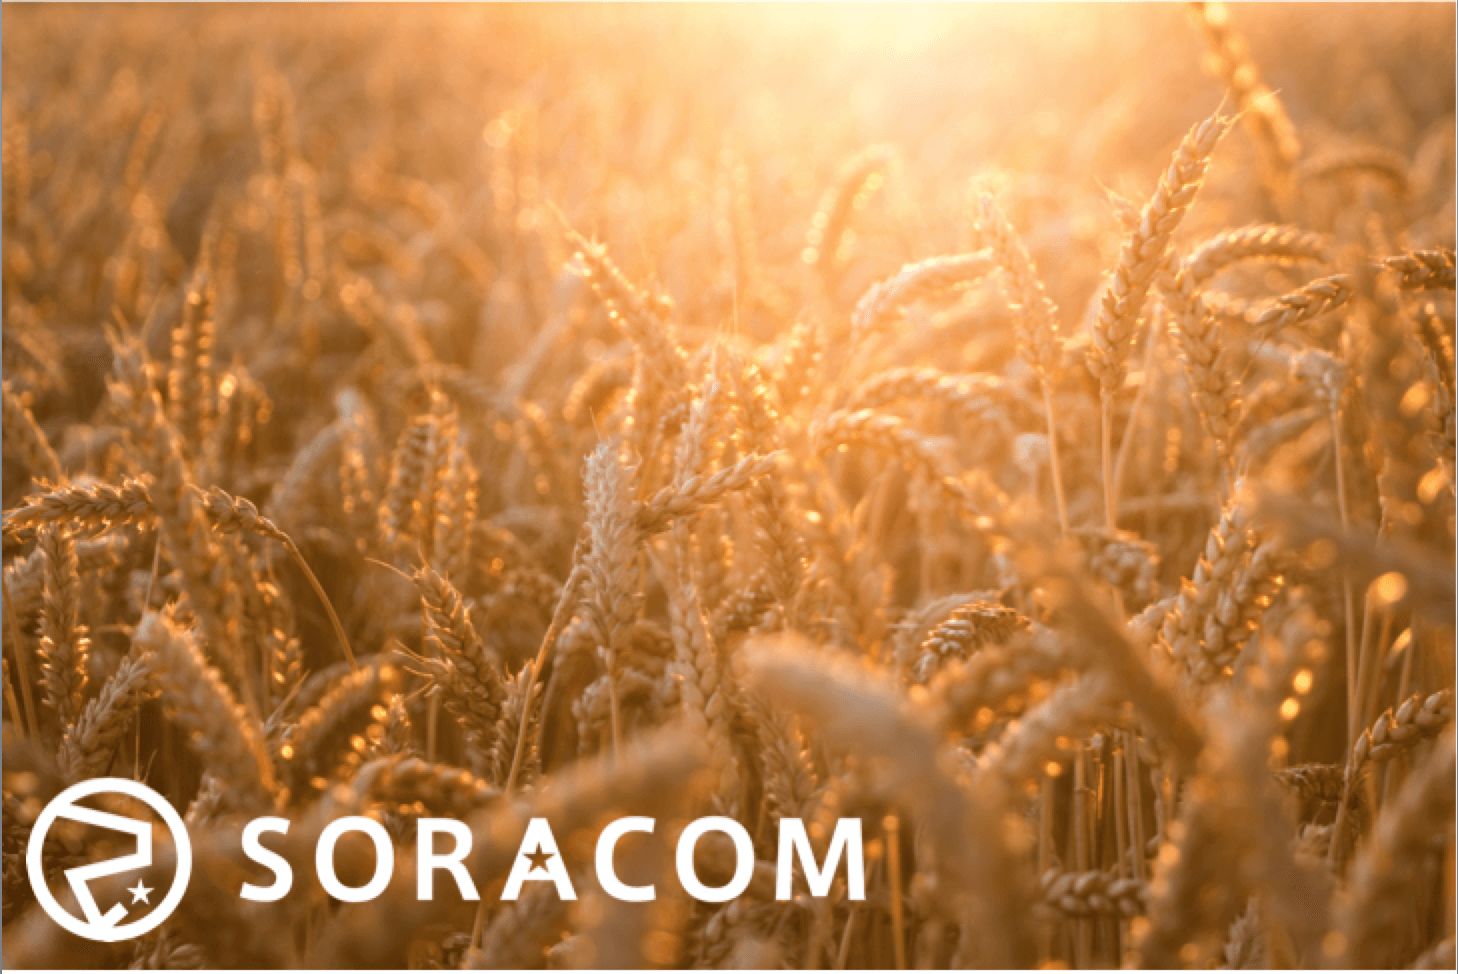 SORACOM Air, SORACOM Beam… What comes next?